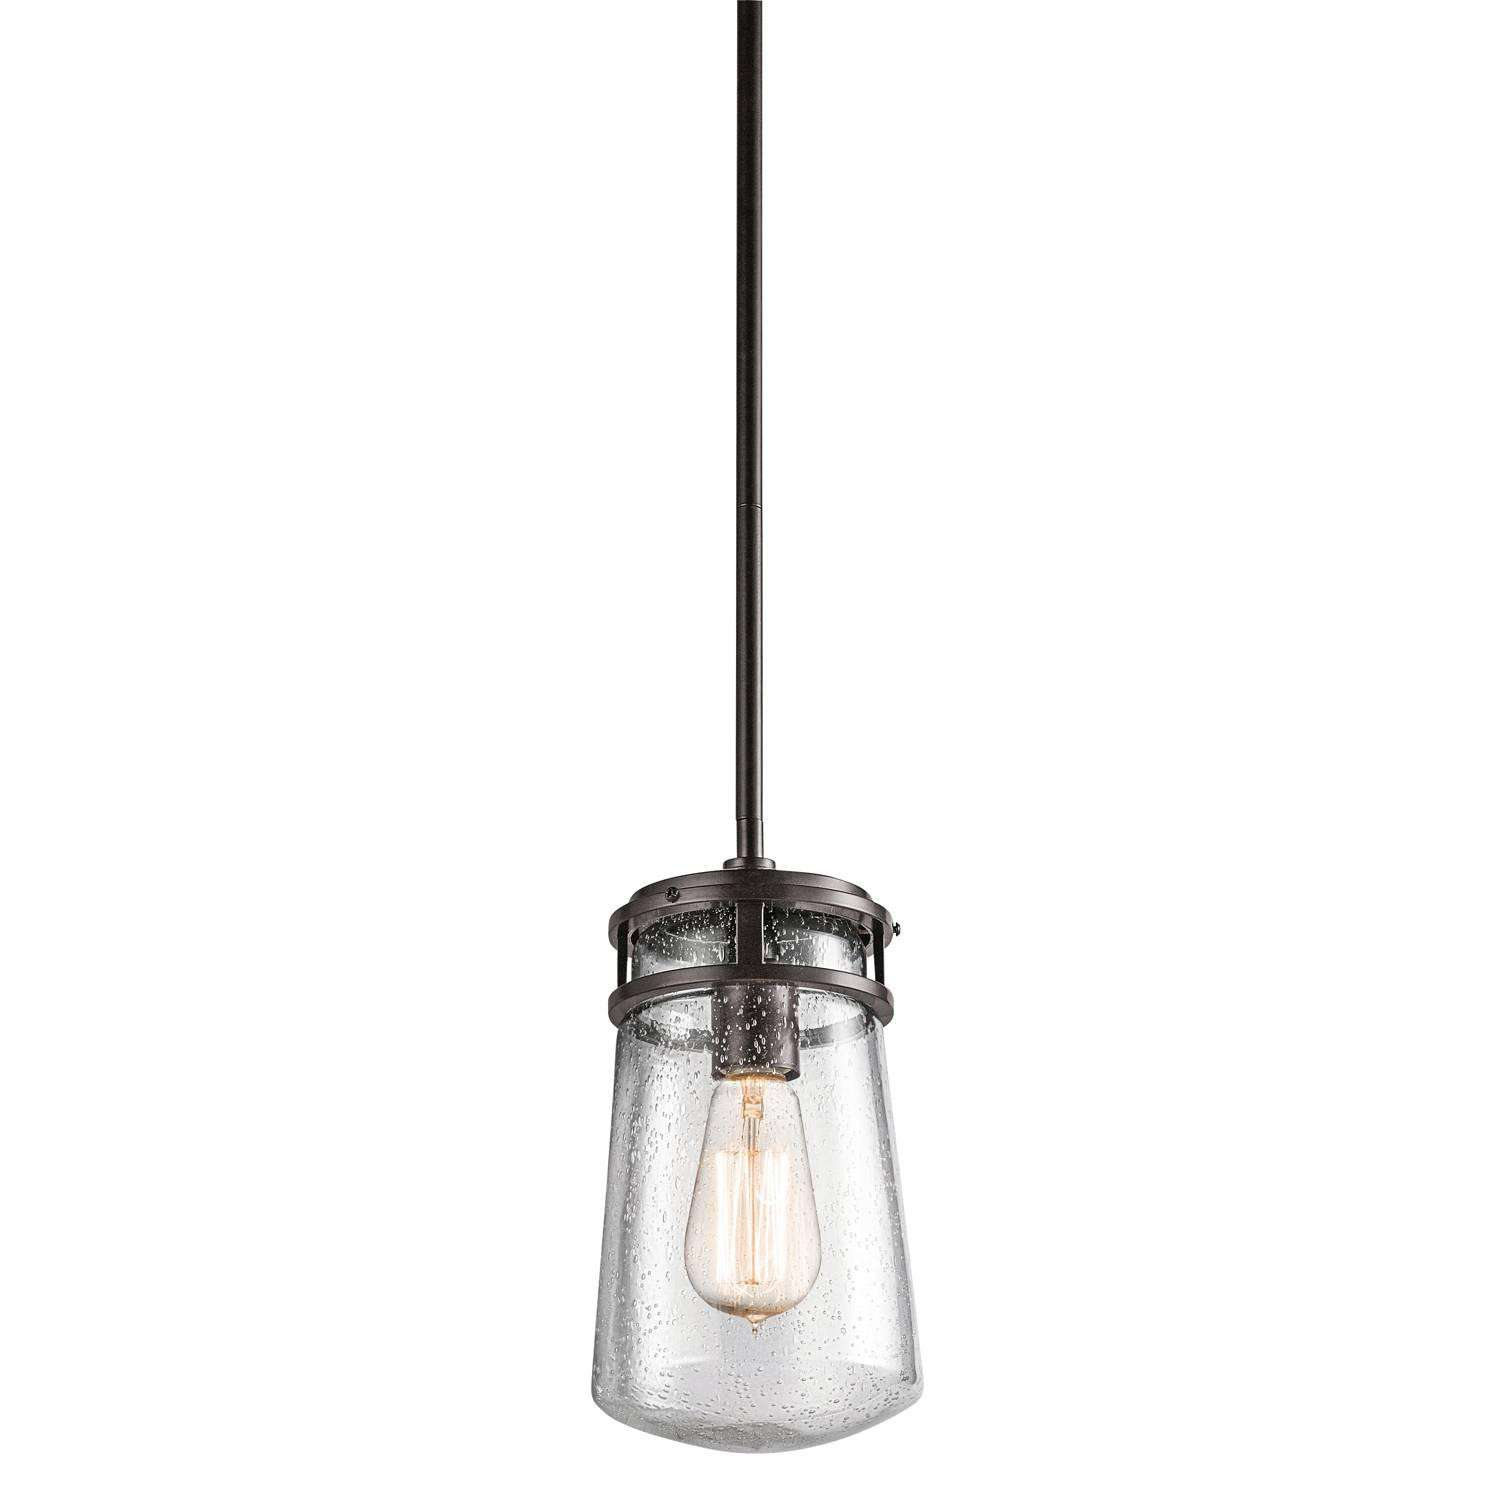 Lyndon - Outdoor Pendant 1Lt in Architectural Bronze Finish